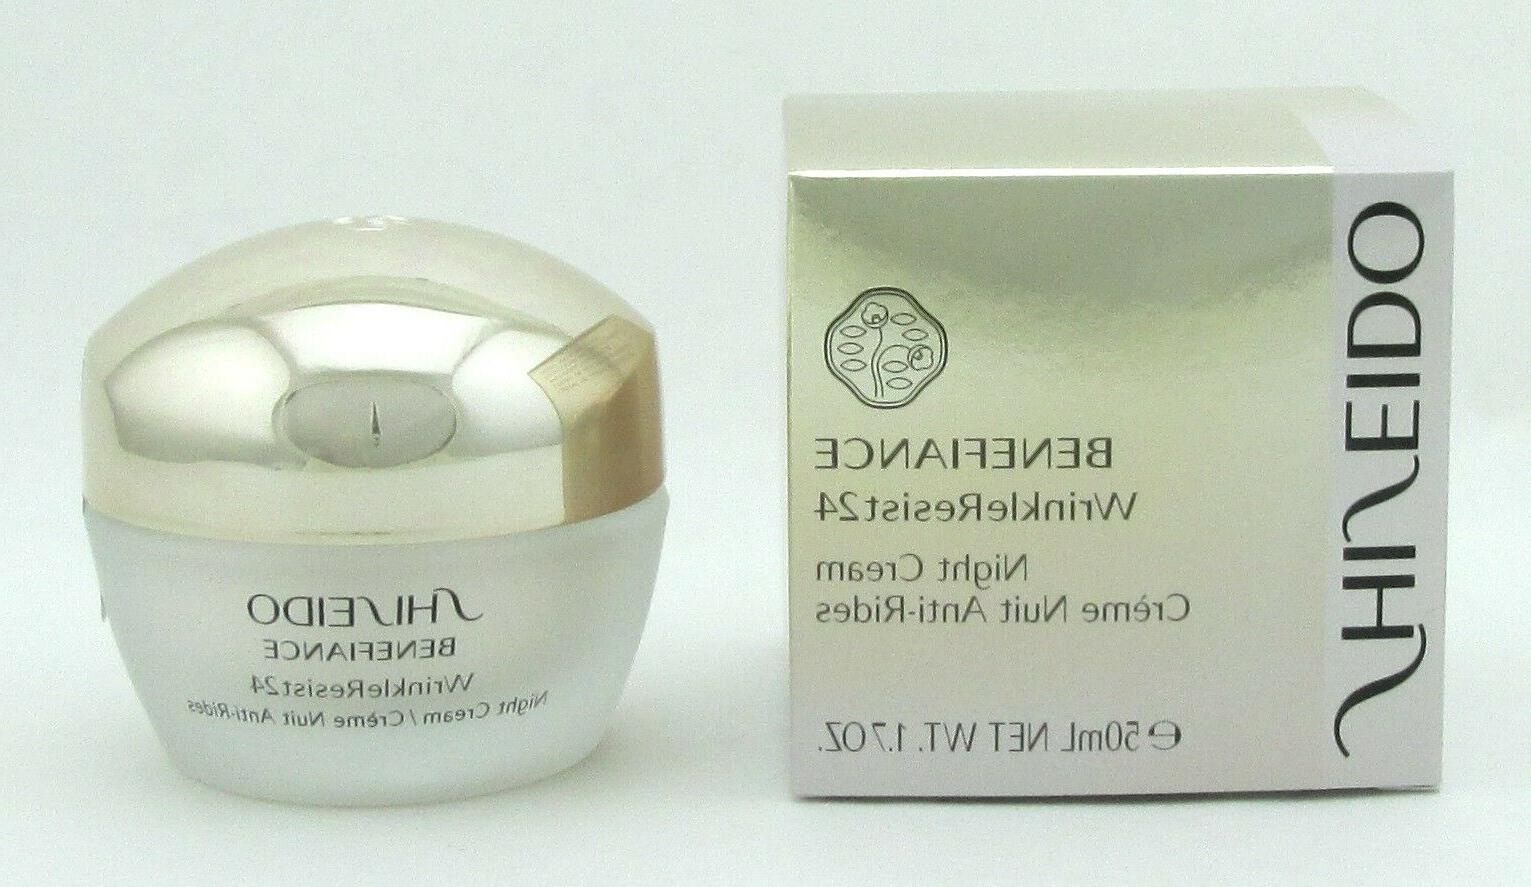 benefiance wrinkleresist24 night cream 1 7 oz